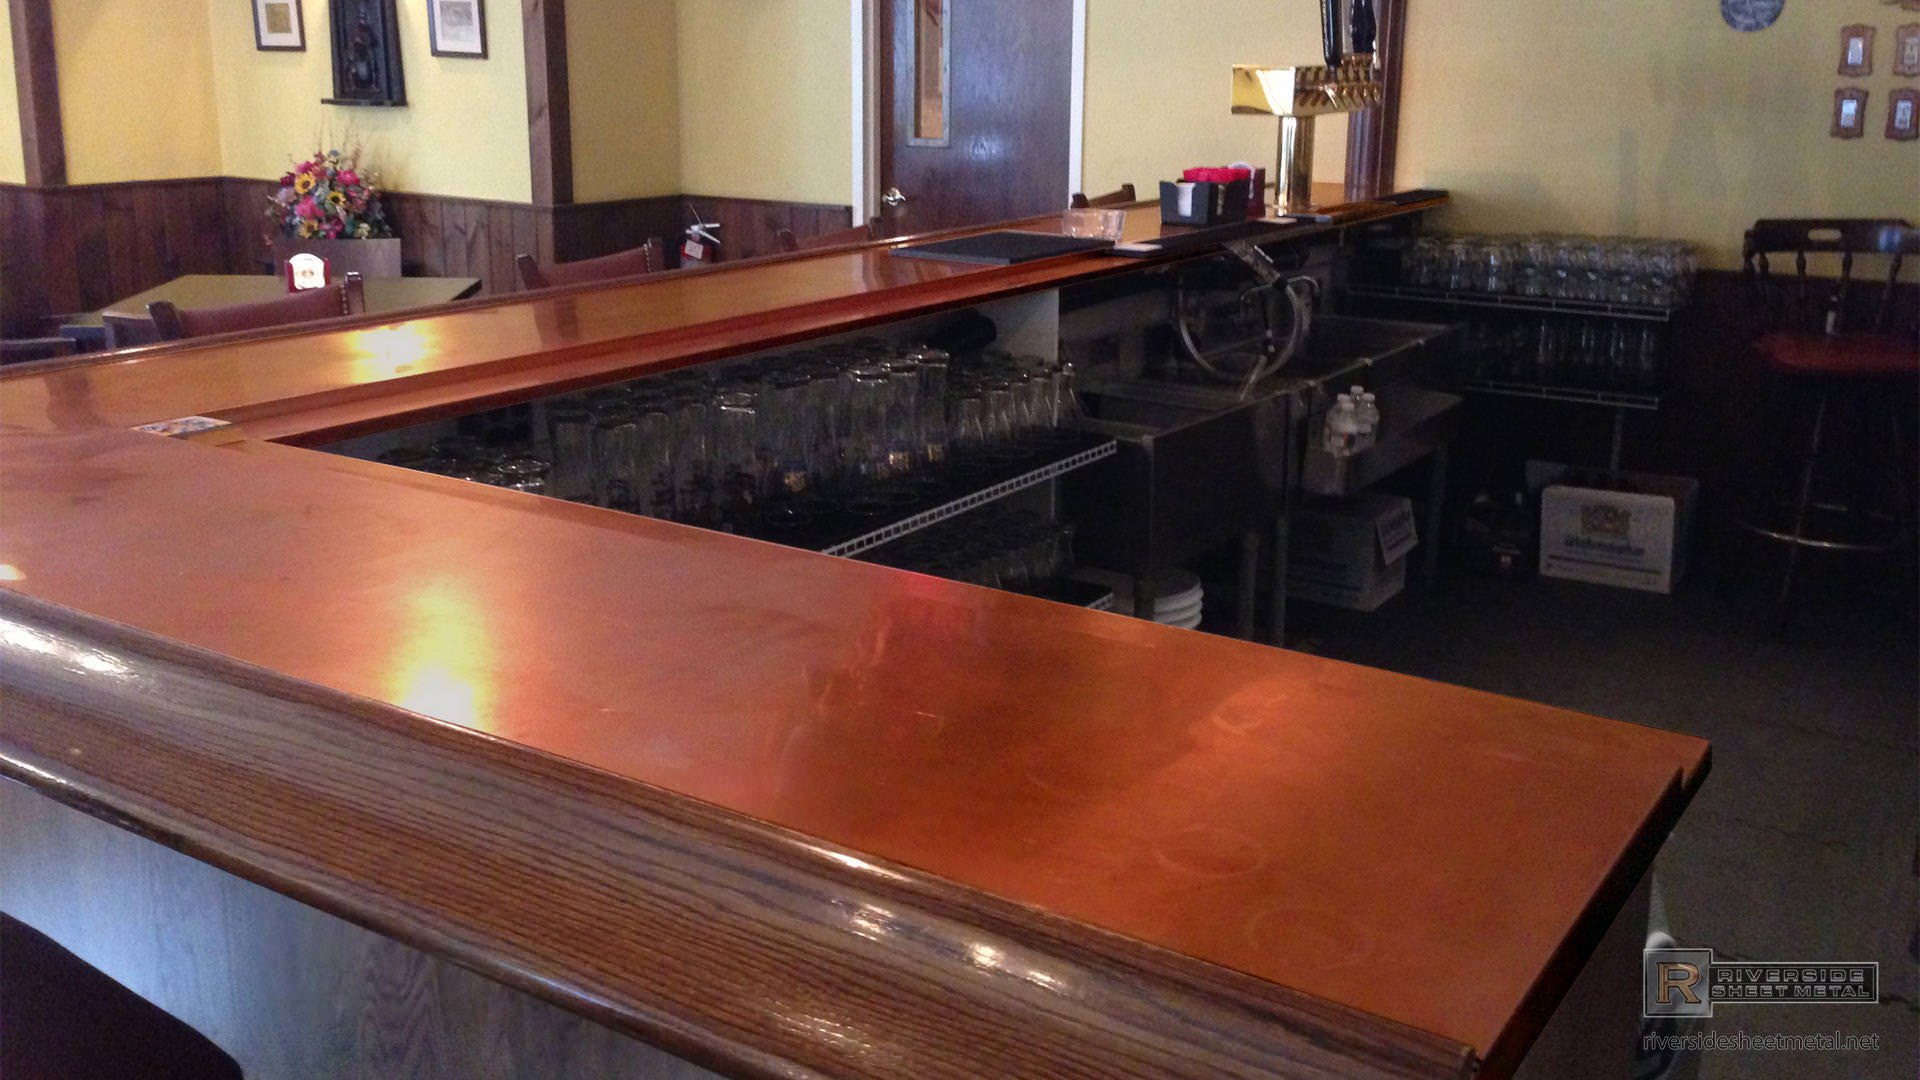 Copper bar top with wooden arm molding rest - MA, USA